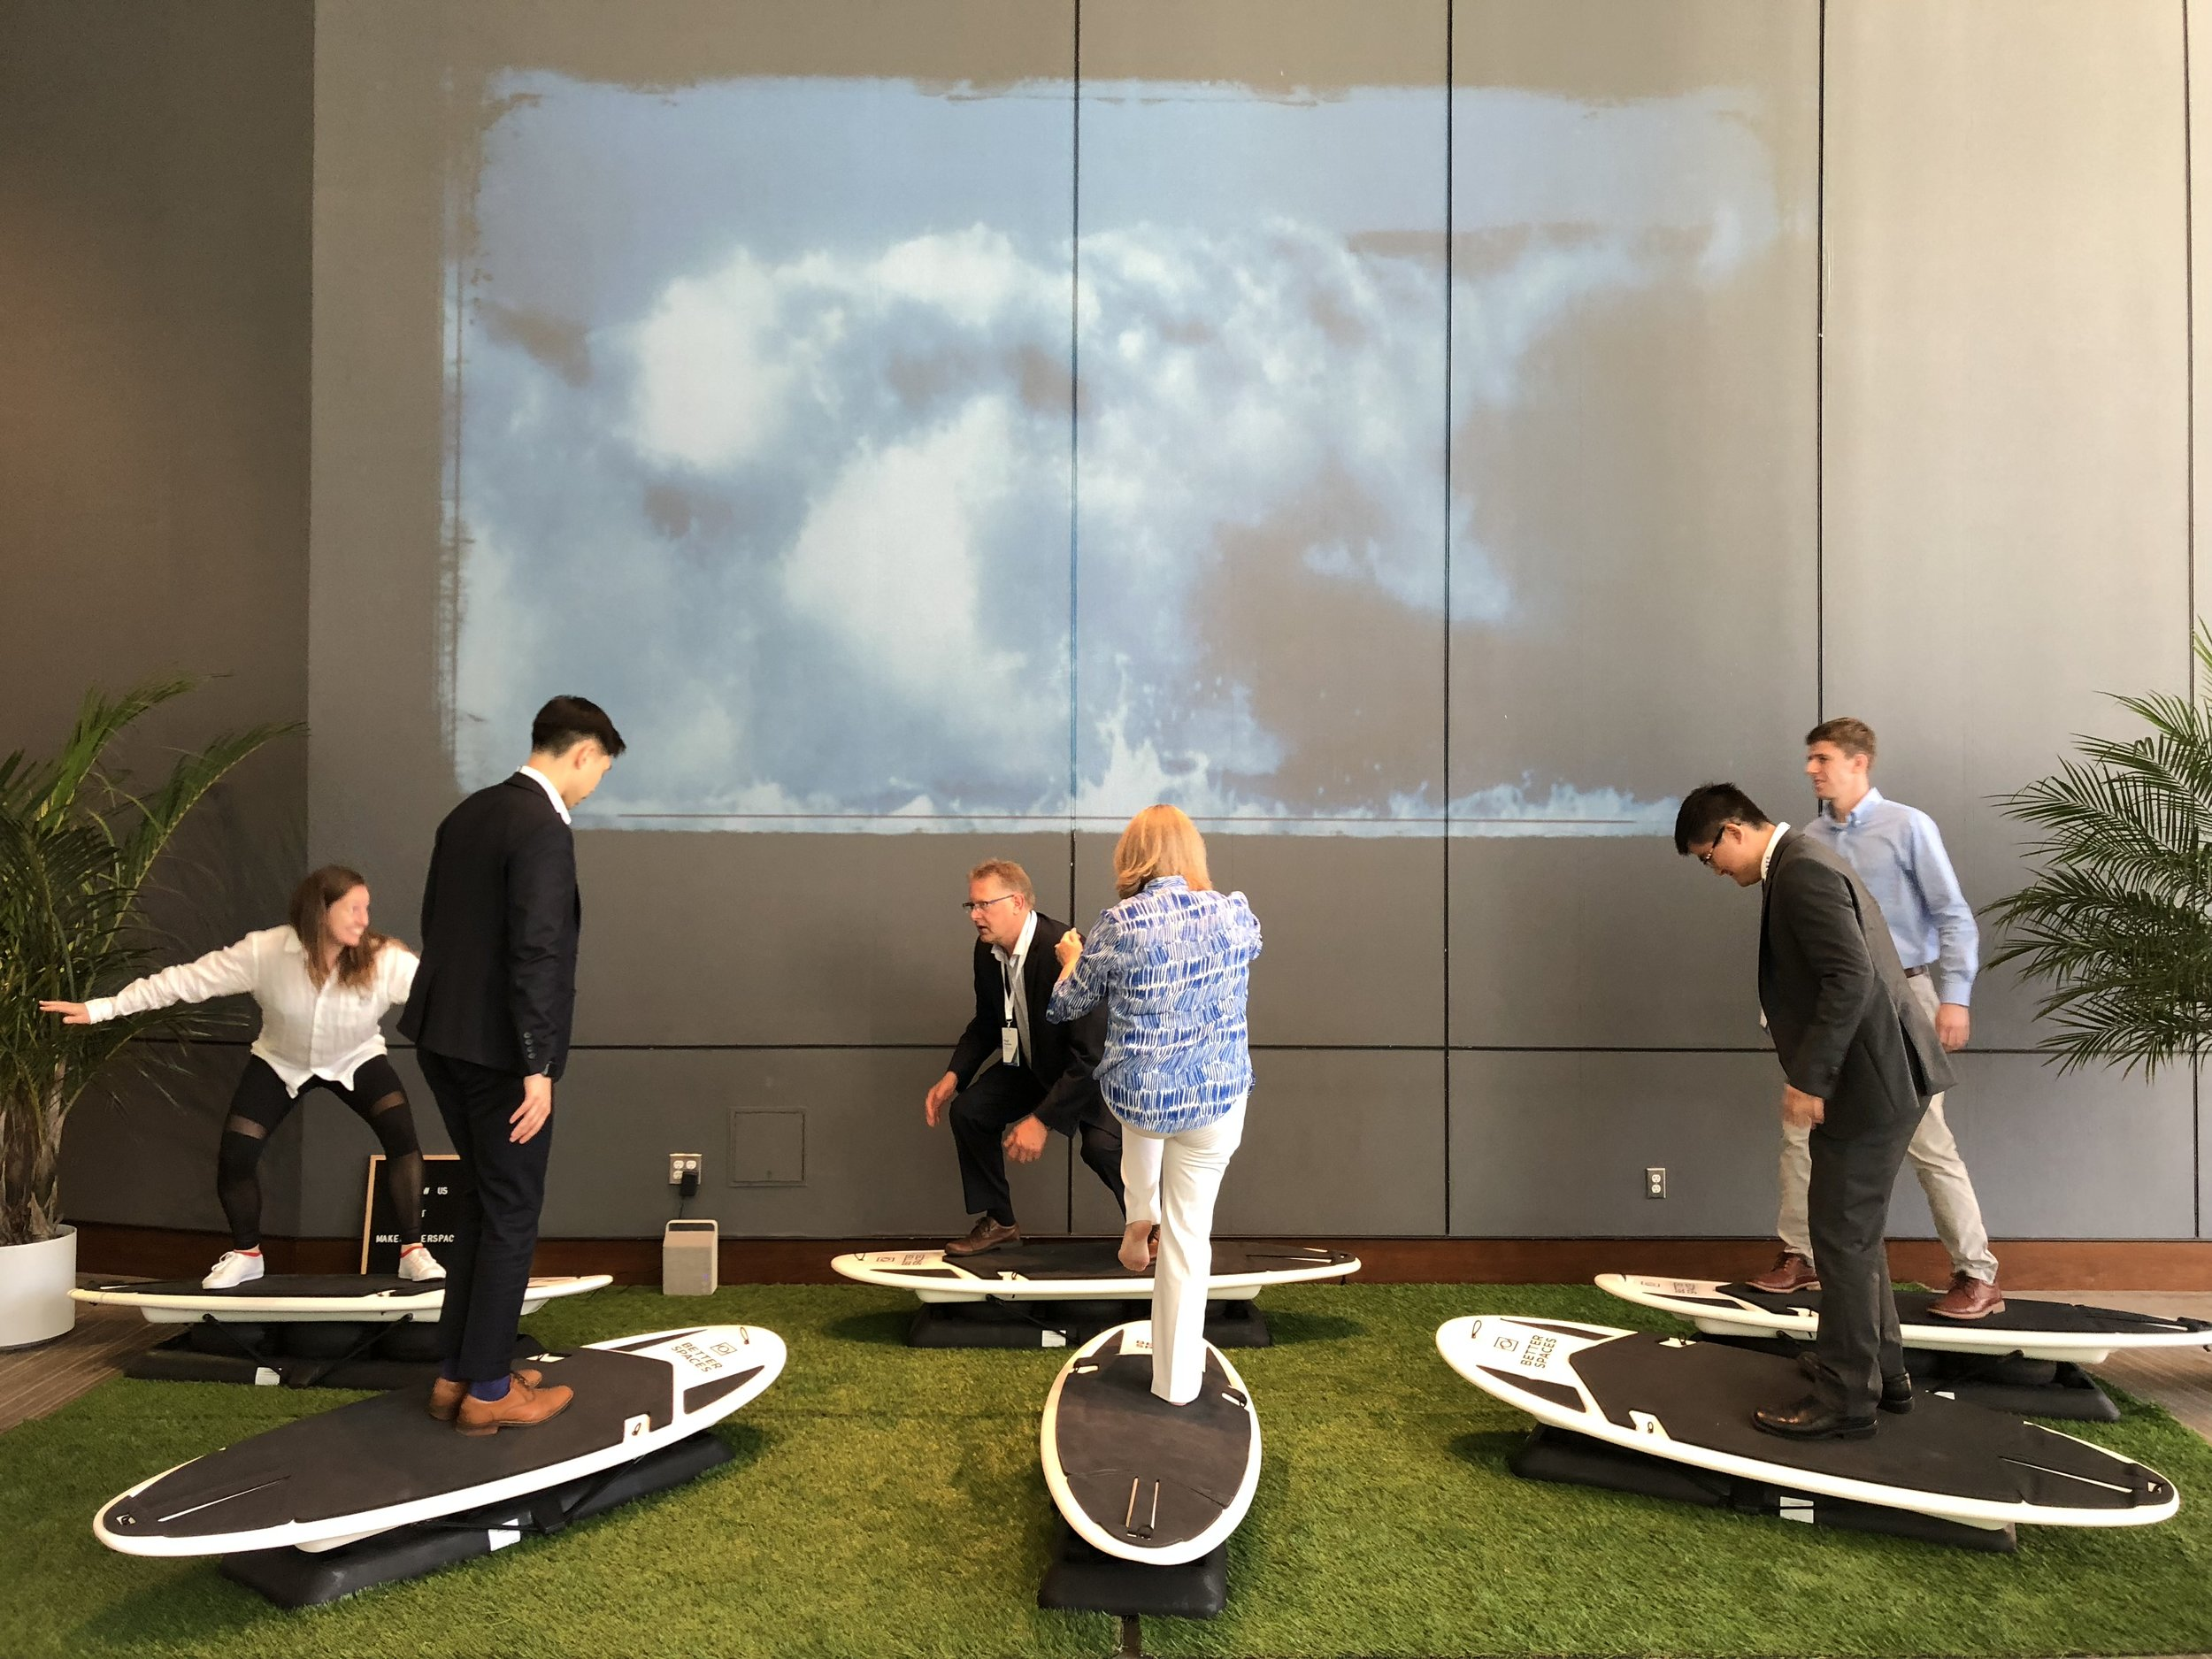 VTS attendees take an indoor surfing class, provided by Better Spaces, in between conference sessions.